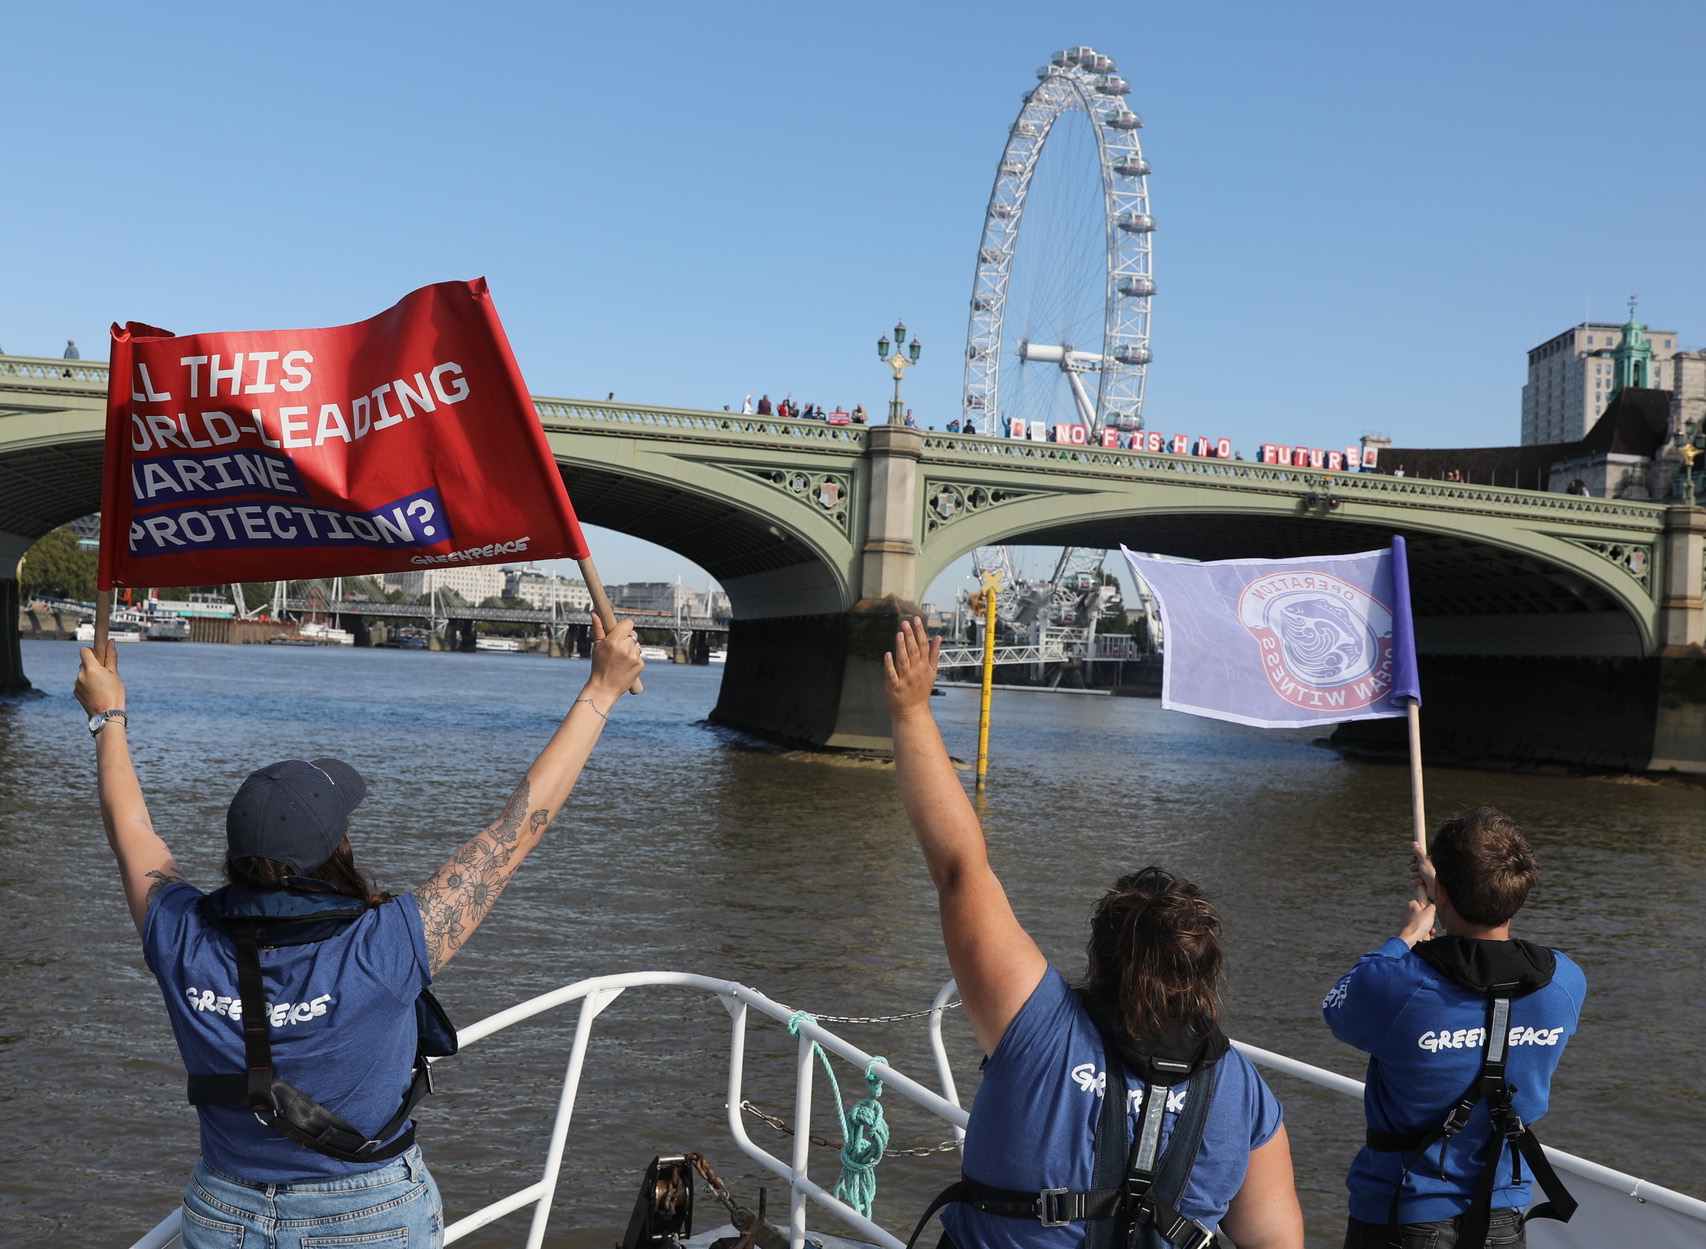 Three Greenpeace crew members wave and hold up banners towards a group of protesters on a bridge. The protesters are holding up placards reading 'No fish no future'. The 'London Eye' ferris wheel is visible in the background.